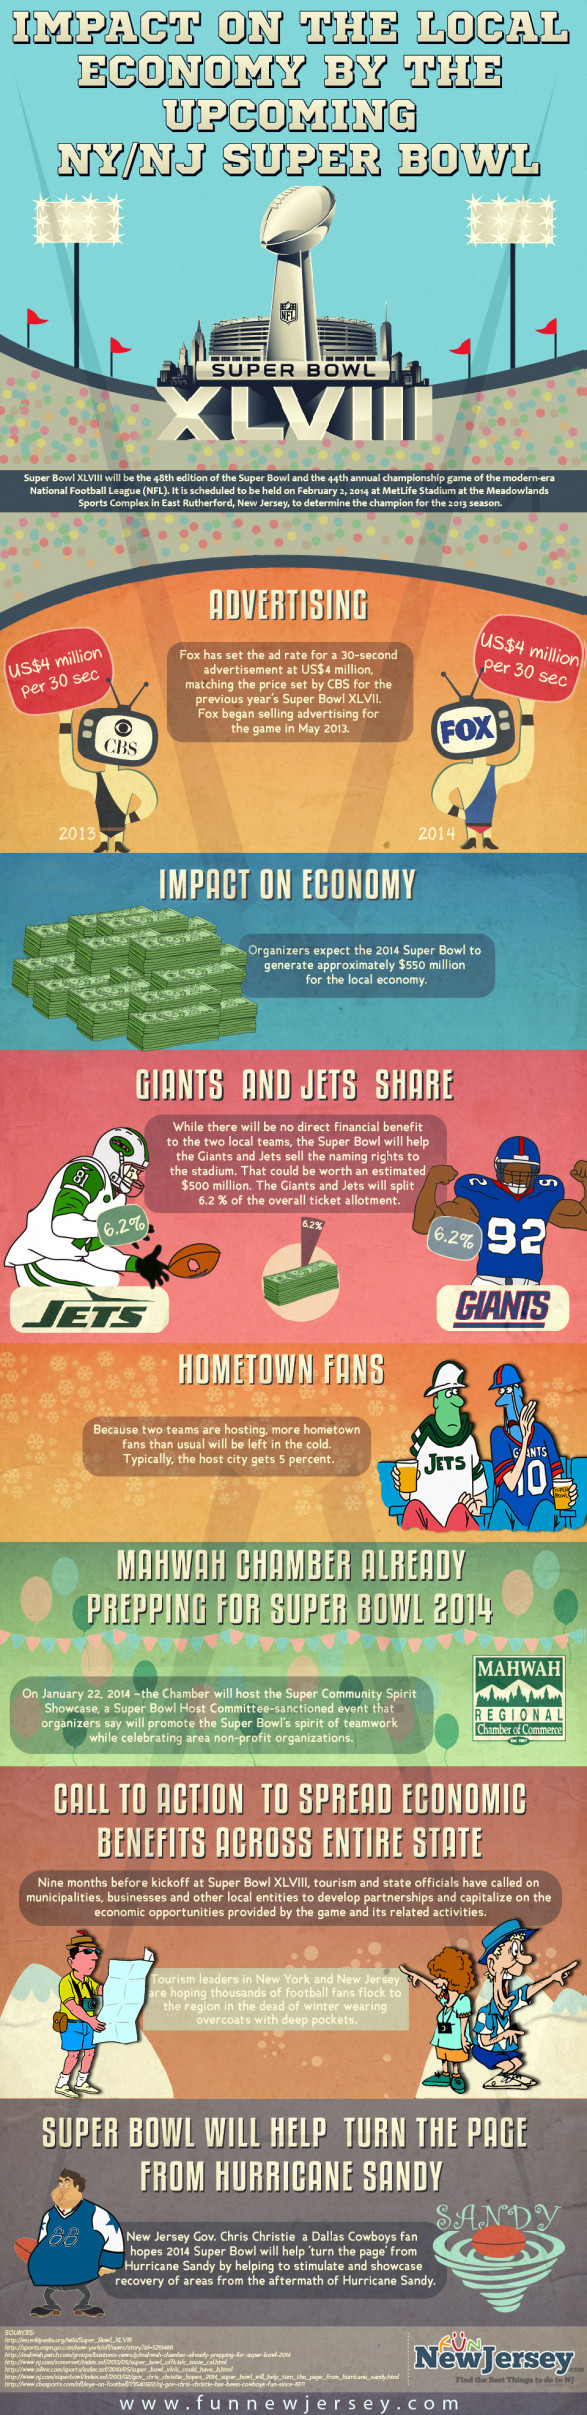 Impact on the local economy by the upcoming NY/NJ Superbowl